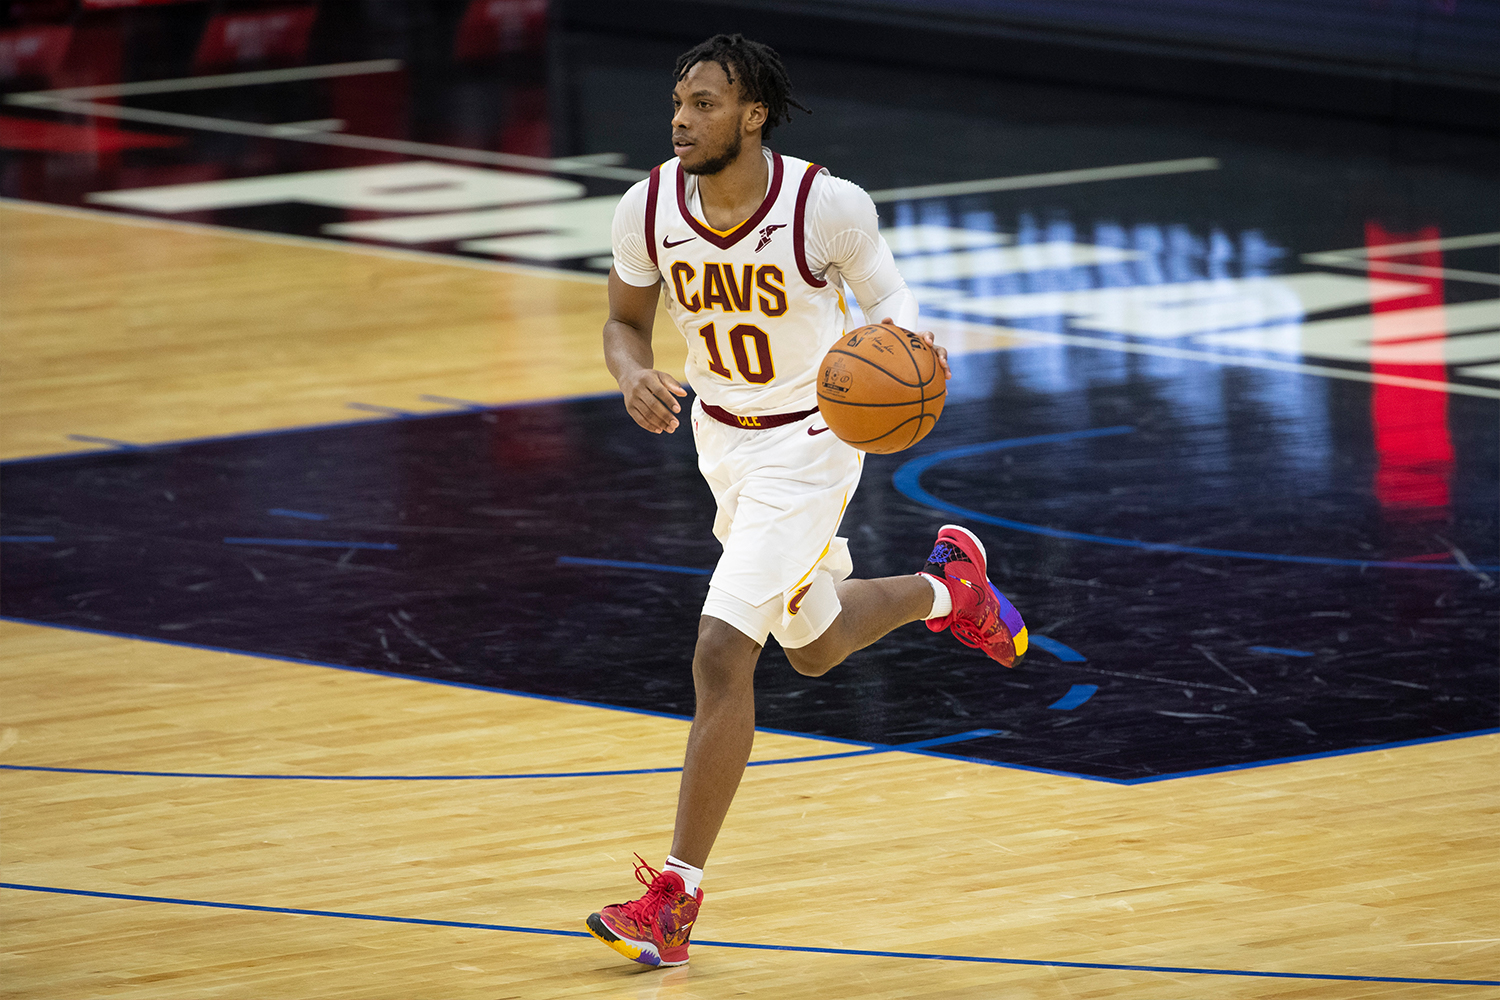 Darius Garland #10 of the Cleveland Cavaliers dribbles the ball against the Philadelphia 76ers